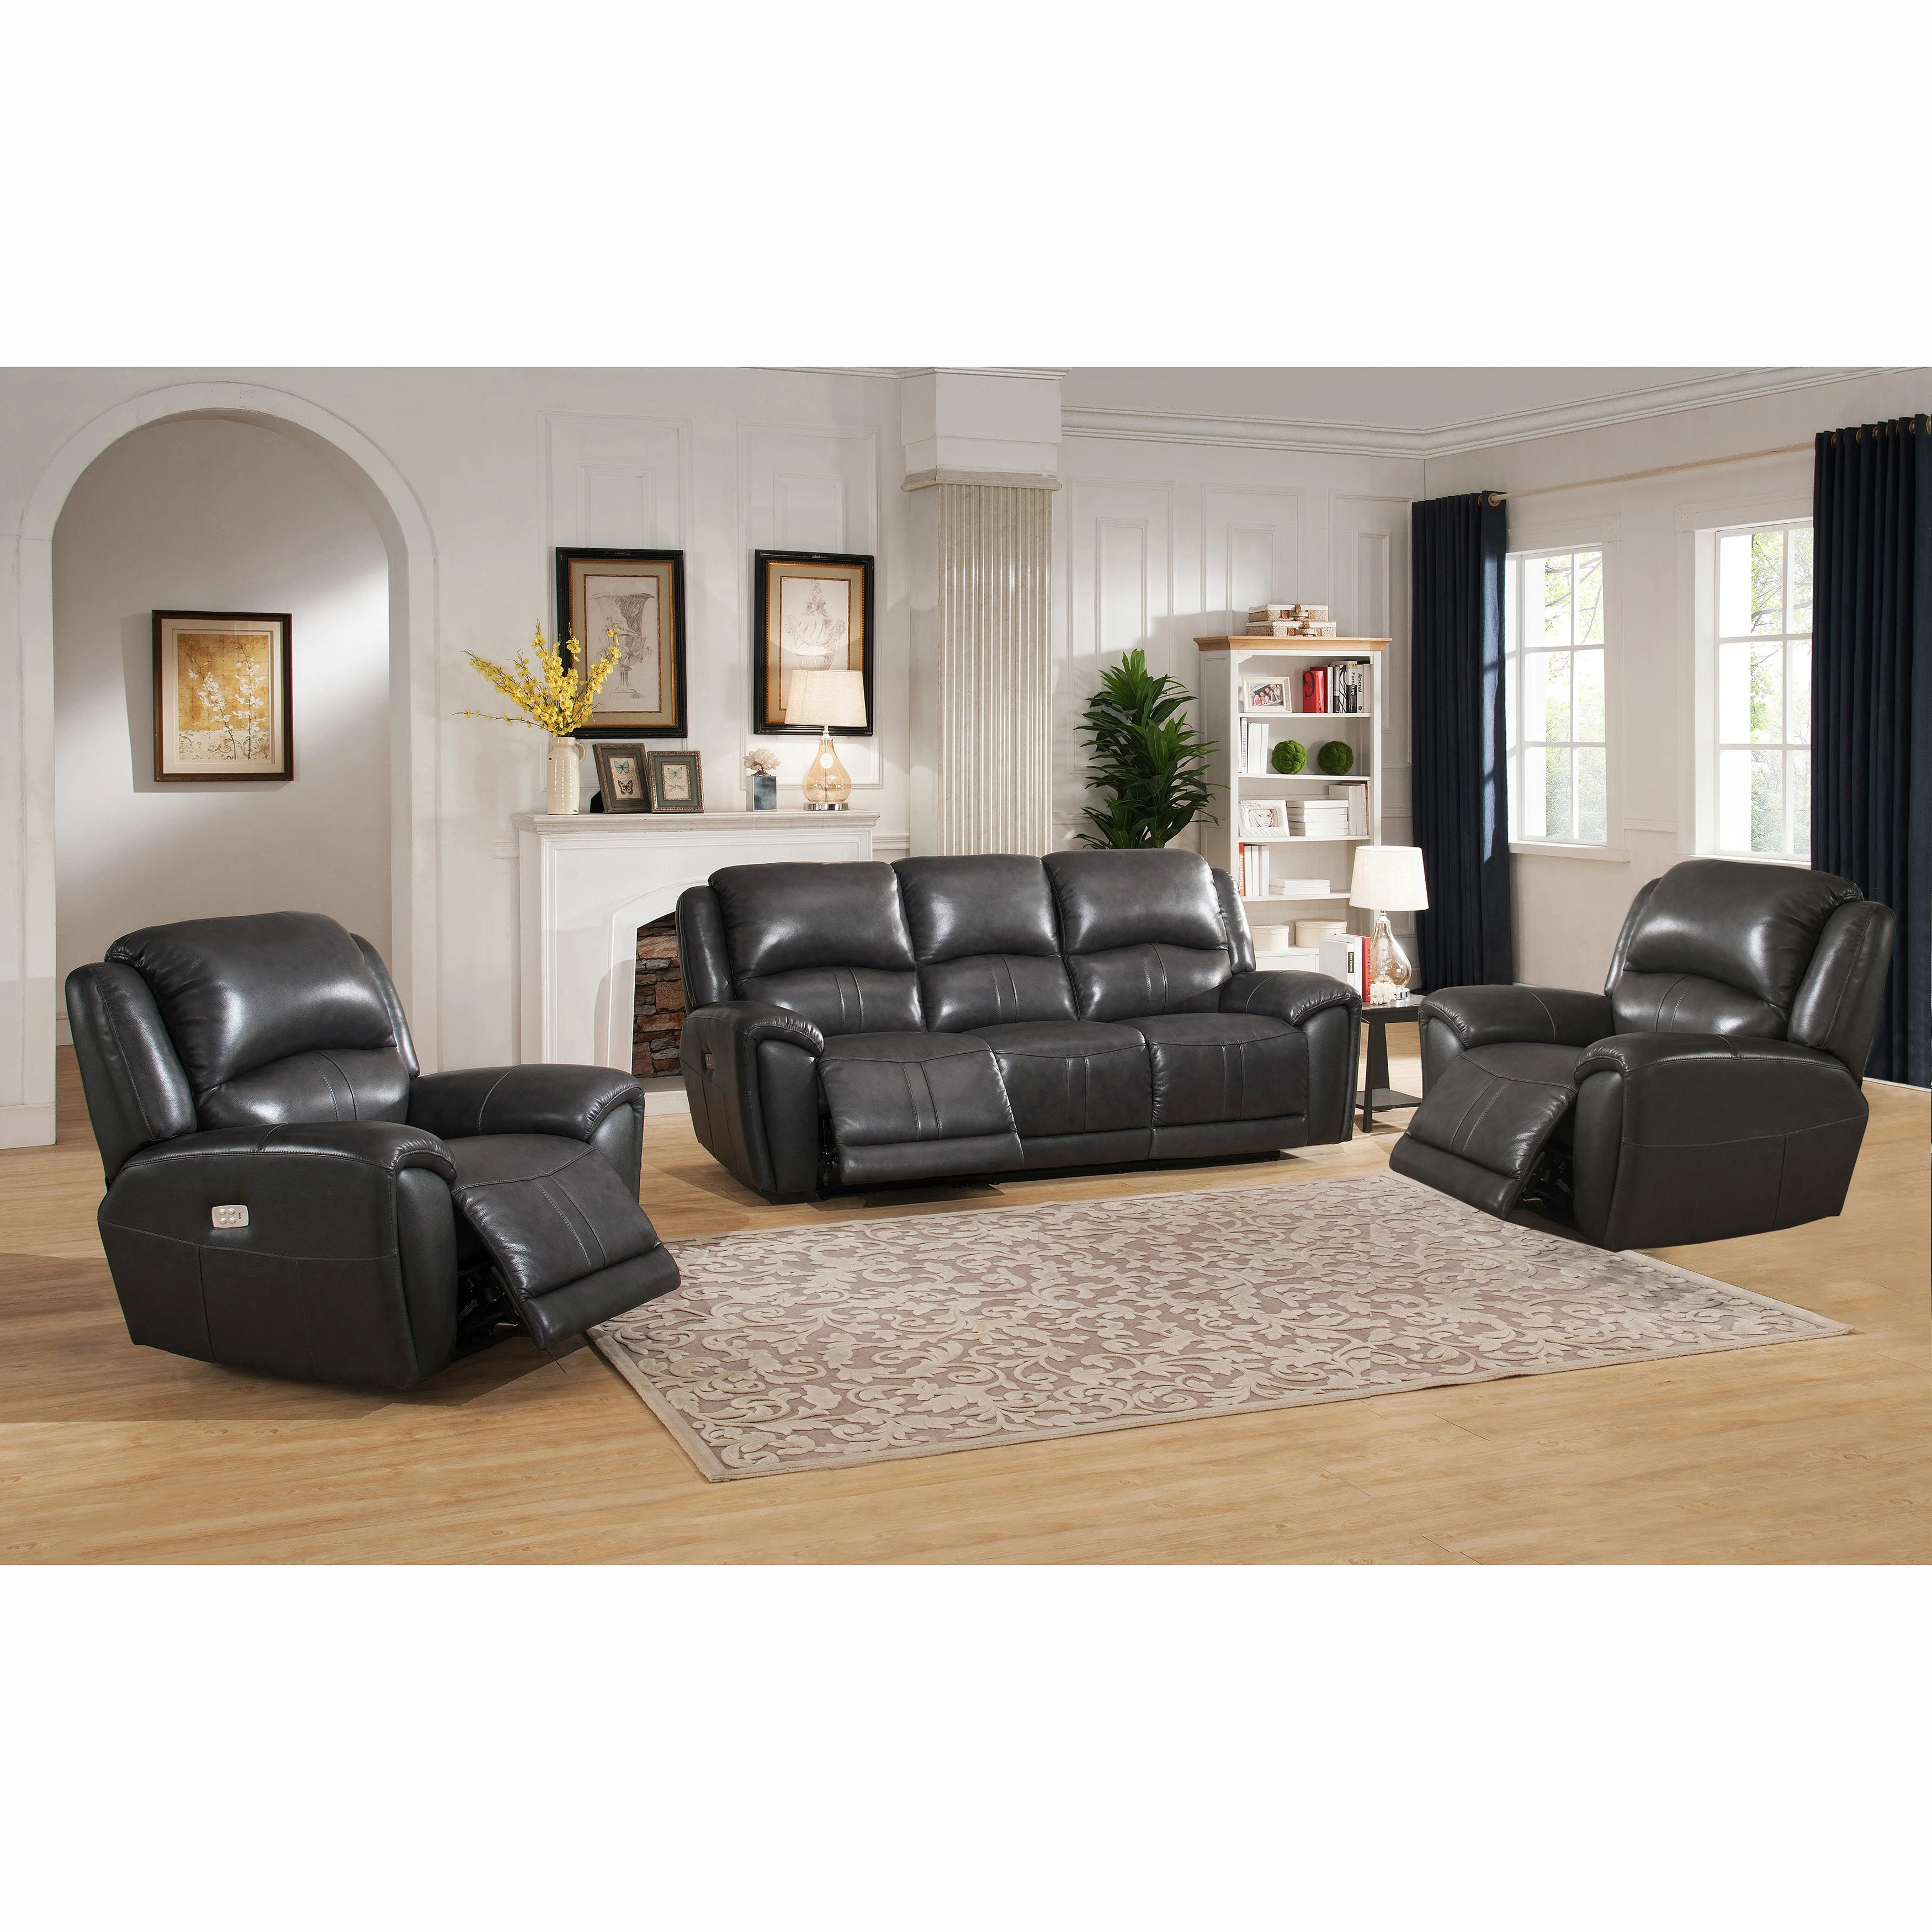 living room sofa two chairs rooms with dark leather couches shop ari grey top grain power reclining and on sale ships to canada overstock ca 18754993